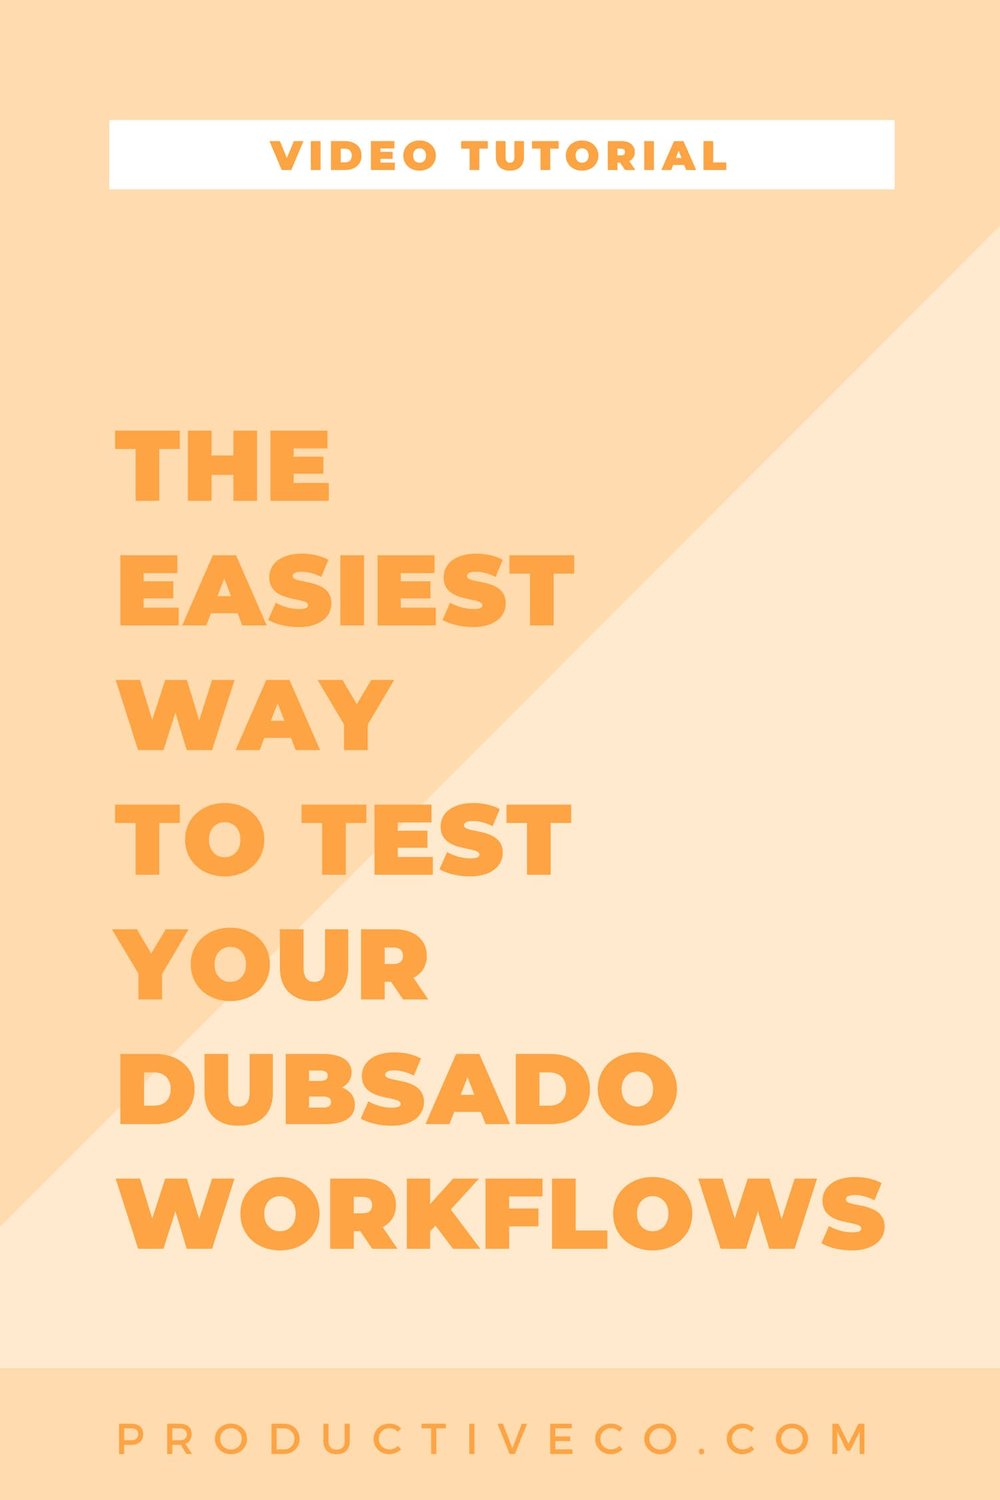 Test your Dubsado workflows to make sure they are perfect. There are two different ways to test, but I only recommend one. Find out why.